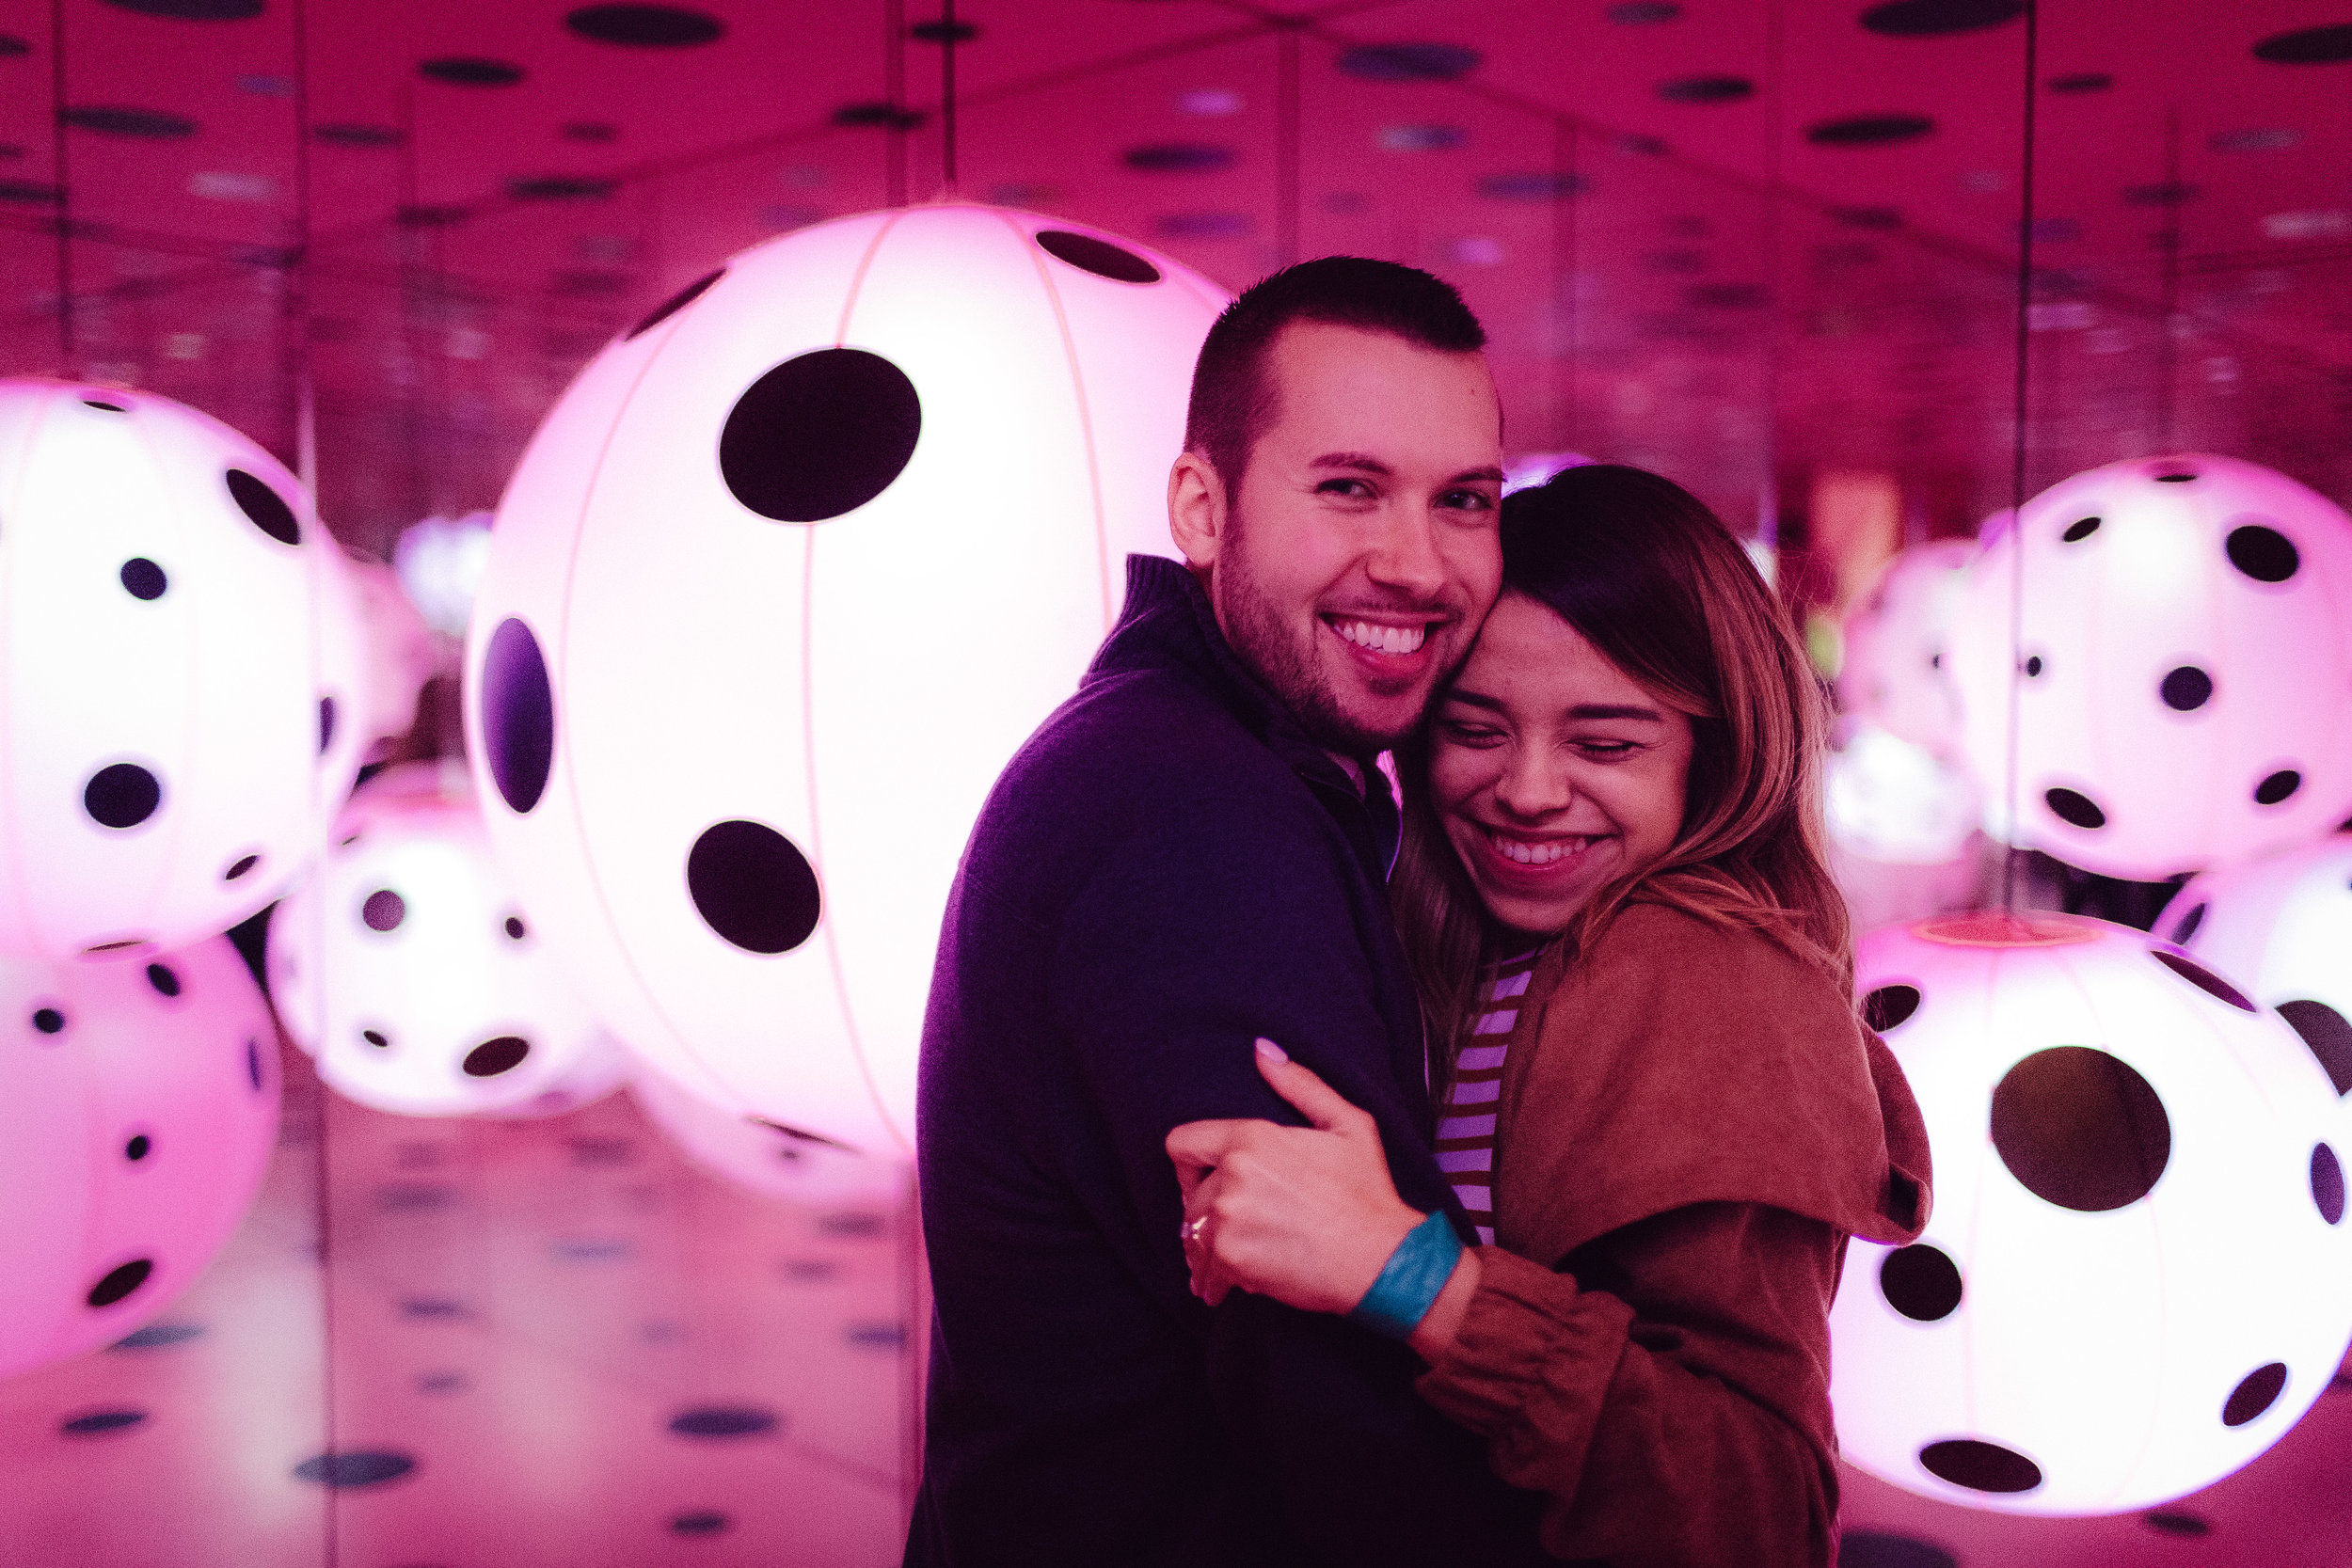 high_museum_infinity_mirrors_Yayoi_Kusama_proposal_amazing_atlanta_real_couple_engagement_ideas_epic_1098.jpg